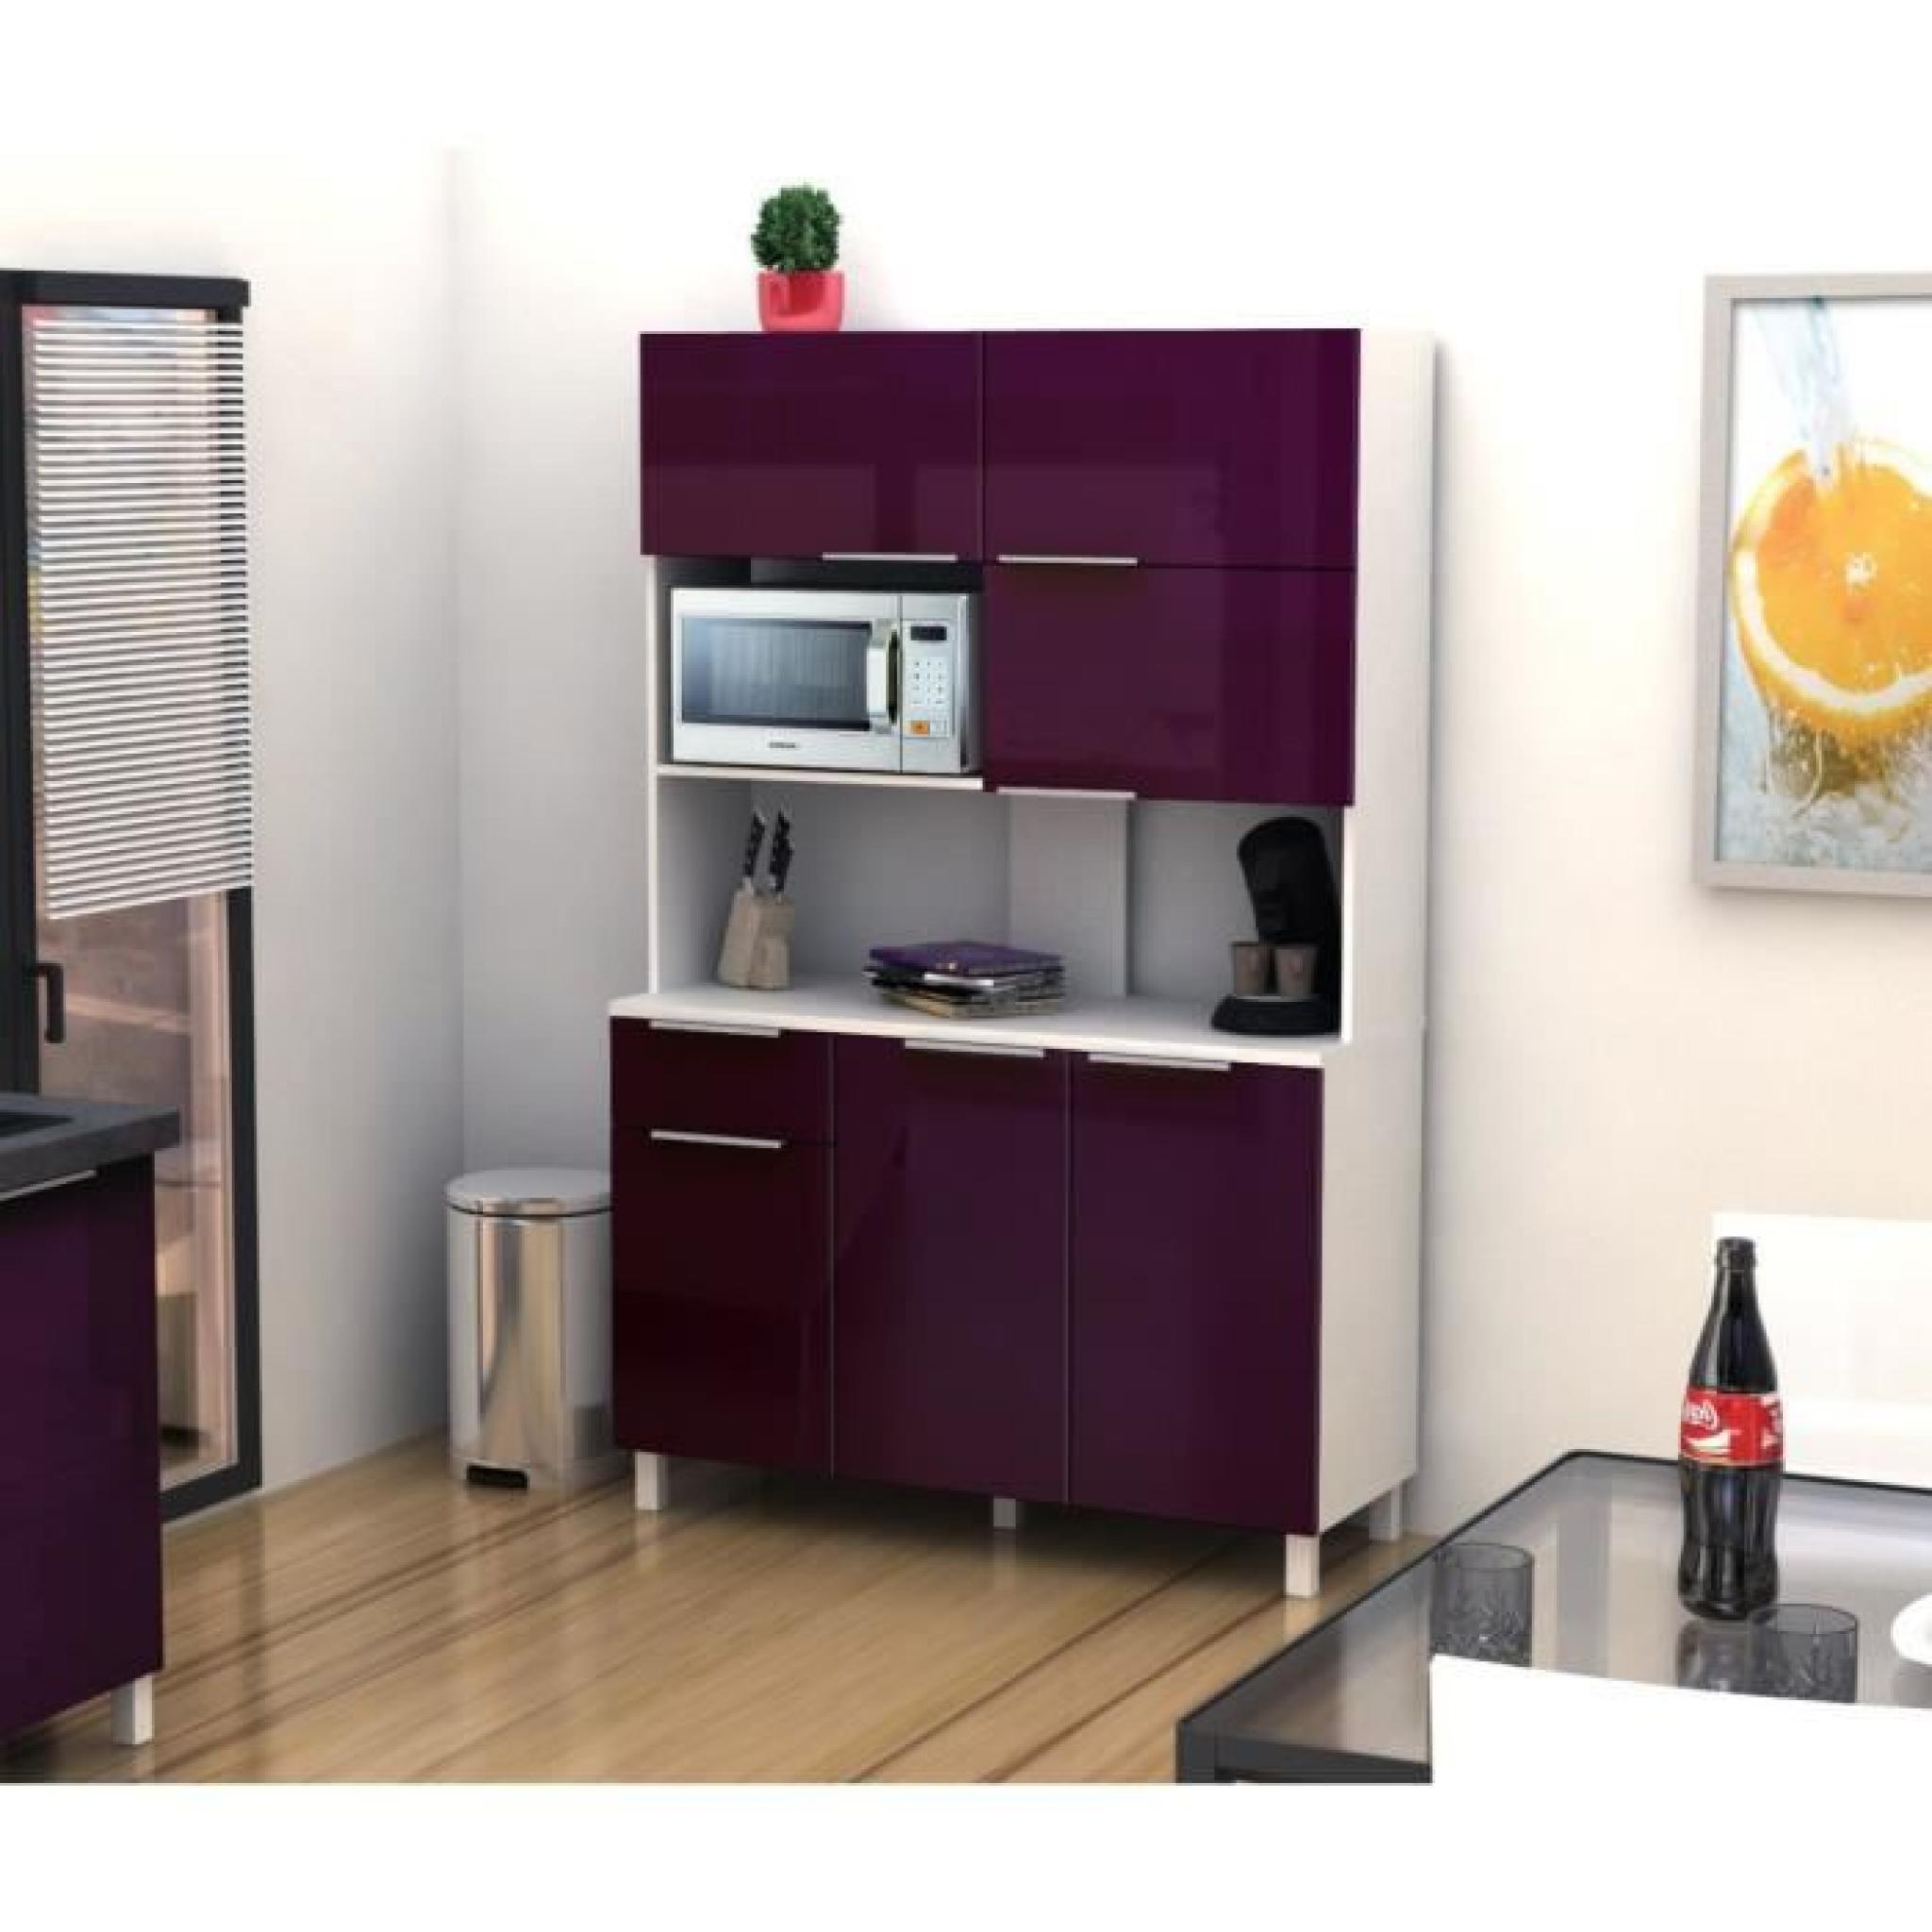 lova buffet de cuisine 120 cm aubergine haute brillance achat vente buffet de cuisine pas. Black Bedroom Furniture Sets. Home Design Ideas